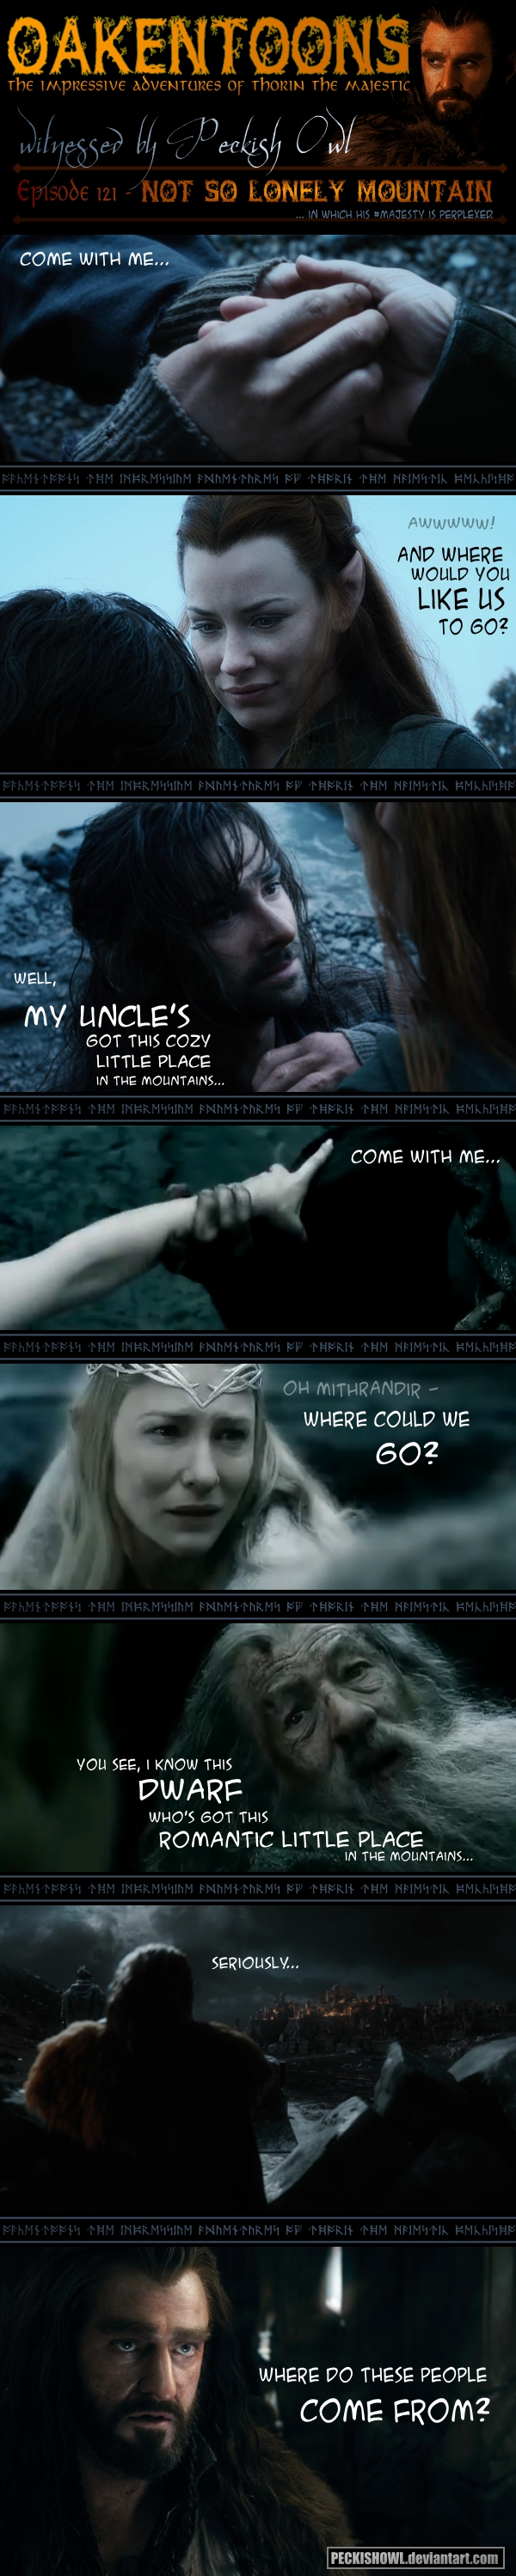 Oakentoon #121: Not So Lonely Mountain by PeckishOwl